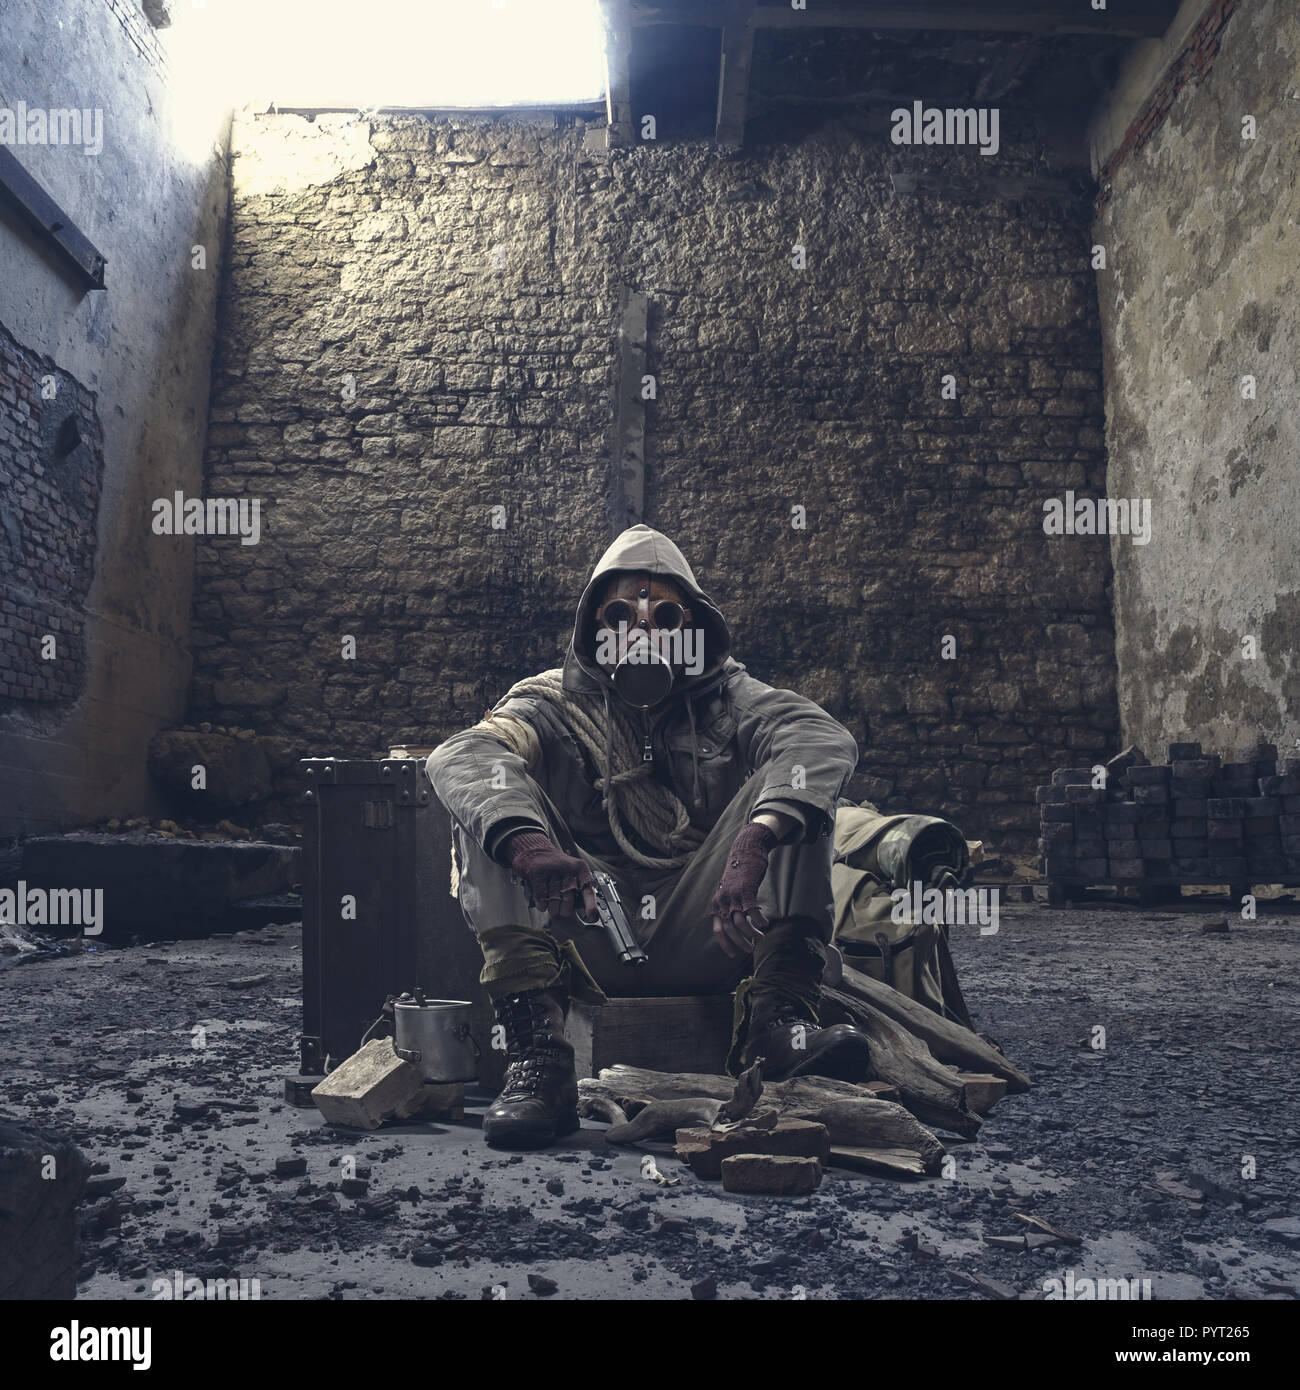 Nuclear disaster survivor in a post apocalyptic setting, he is wearing a gas mask and holding a gun: environmental disaster and chemical warfare conce - Stock Image